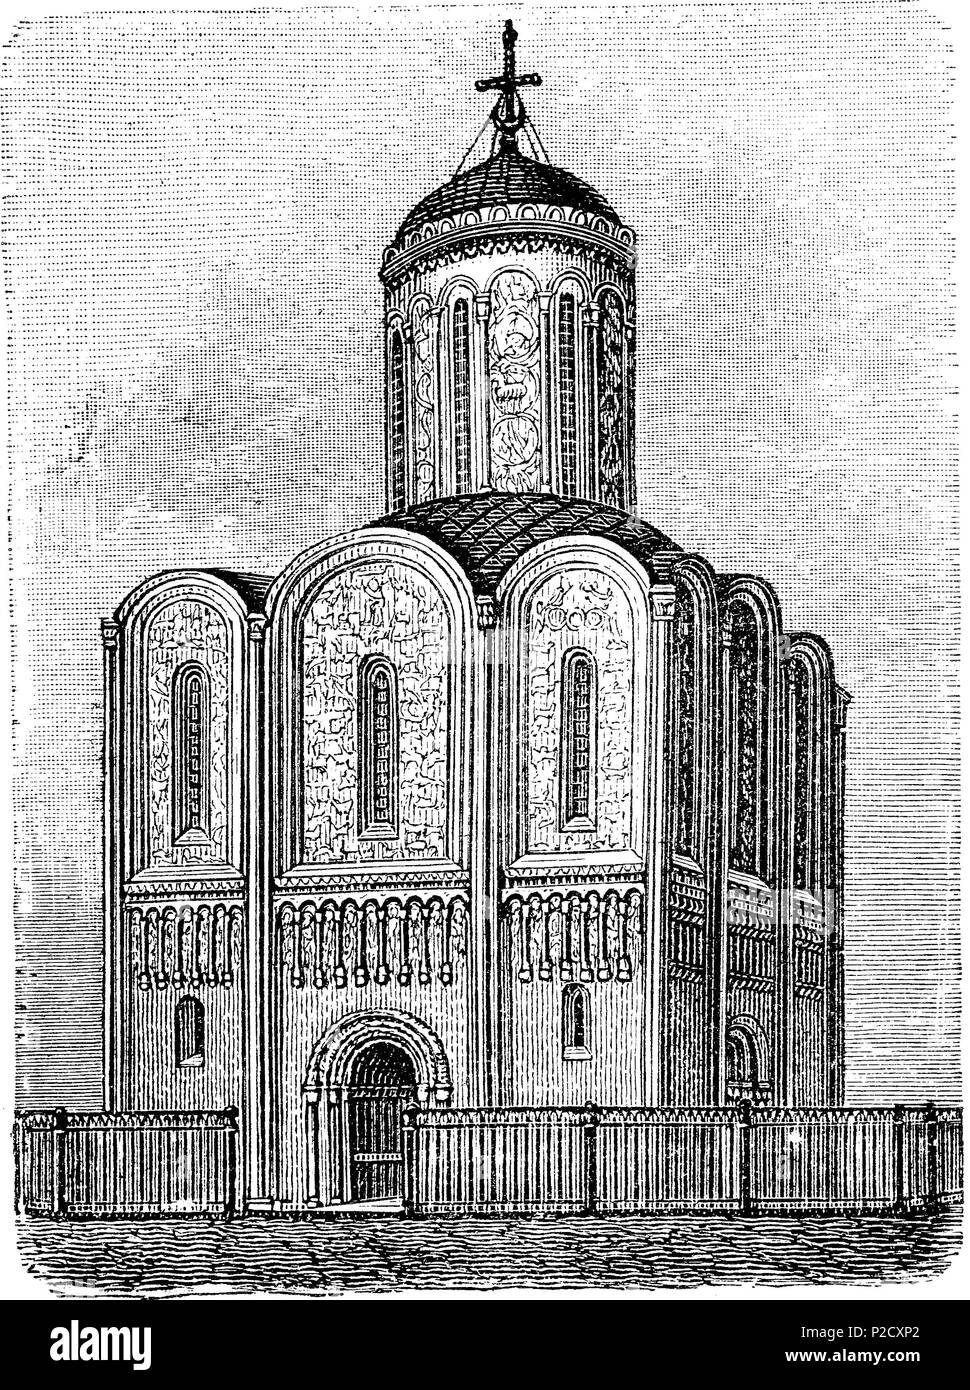 St. Demetrius' Cathedral at Vladimir, Russia, Kathedrale des heiligen Demetrius zu Wladimir, Ende des 12. Jahrhunderts, Russland, digital improved reproduction from an original print from the 19th century, 1881 - Stock Image